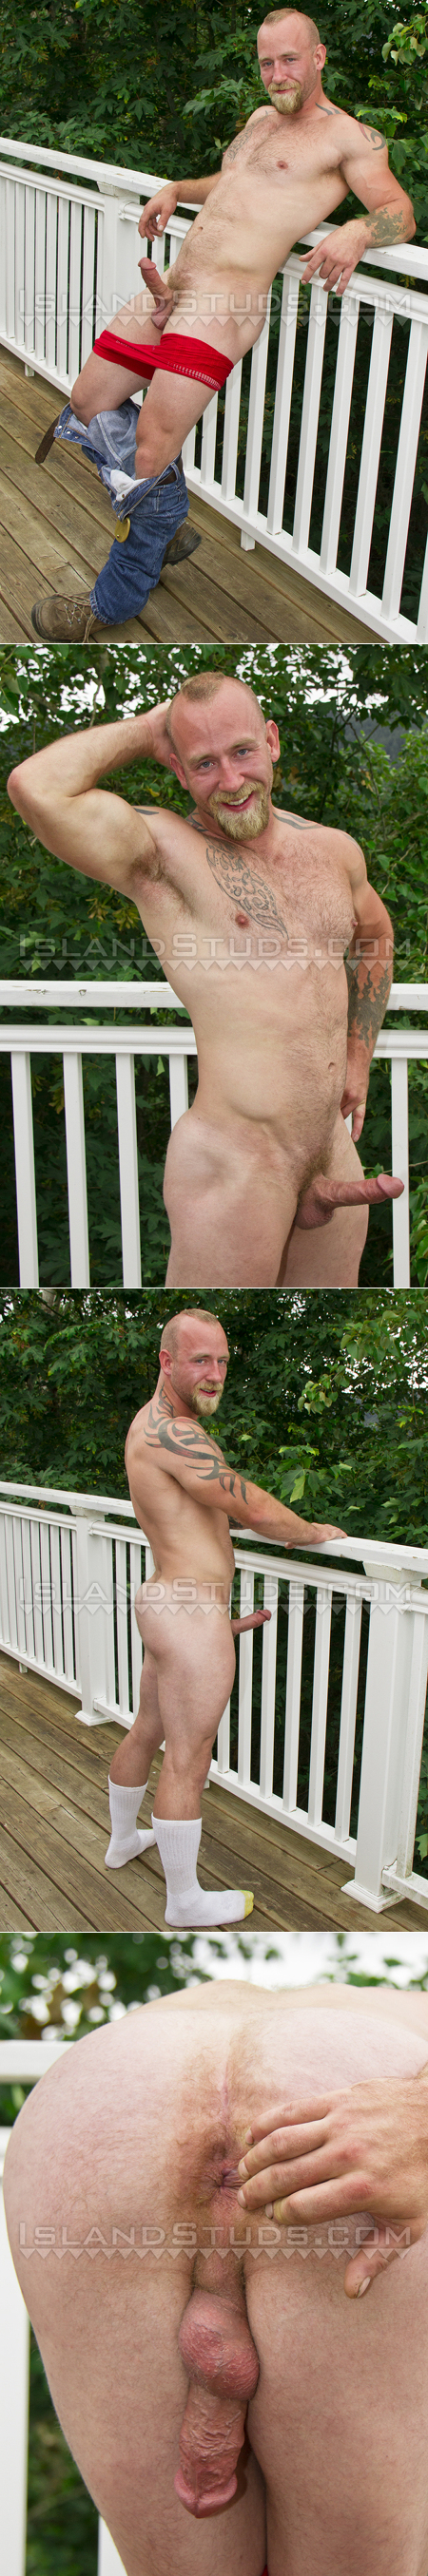 Hairy muscle stud sports his big erection on the deck and spreads his butt cheeks, exposing his hole.